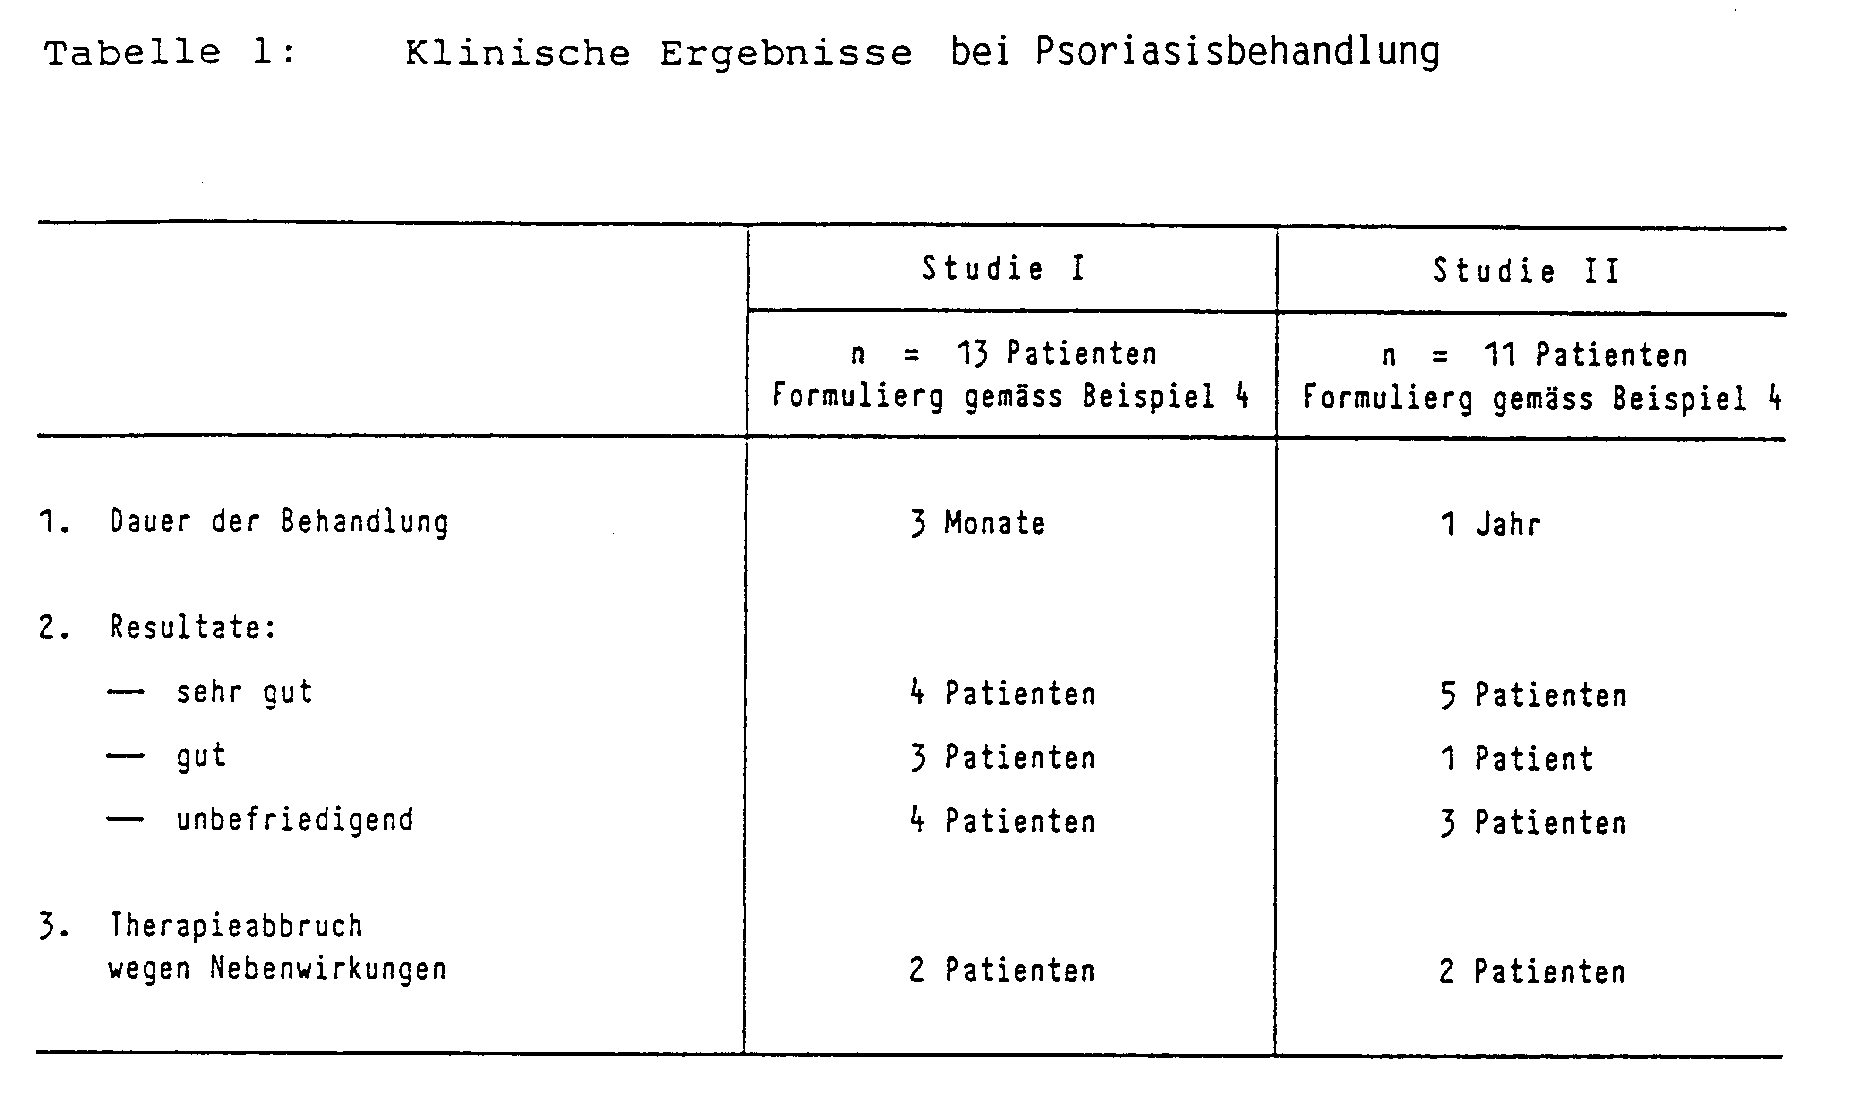 "research analysis on chronic oral ingestion of 1145 technical for 12 months,"" toxicology research center, imamichi institute for animal reproduction, dejima-mura, niihari-gun, ibaraki, japan, aug 5, 1991  the pwg analysis by 5 pathologists of both chronic and subchronic study adrenal  ""chronic oral toxicity study on the dog treated with iki-1145 technical for 12."